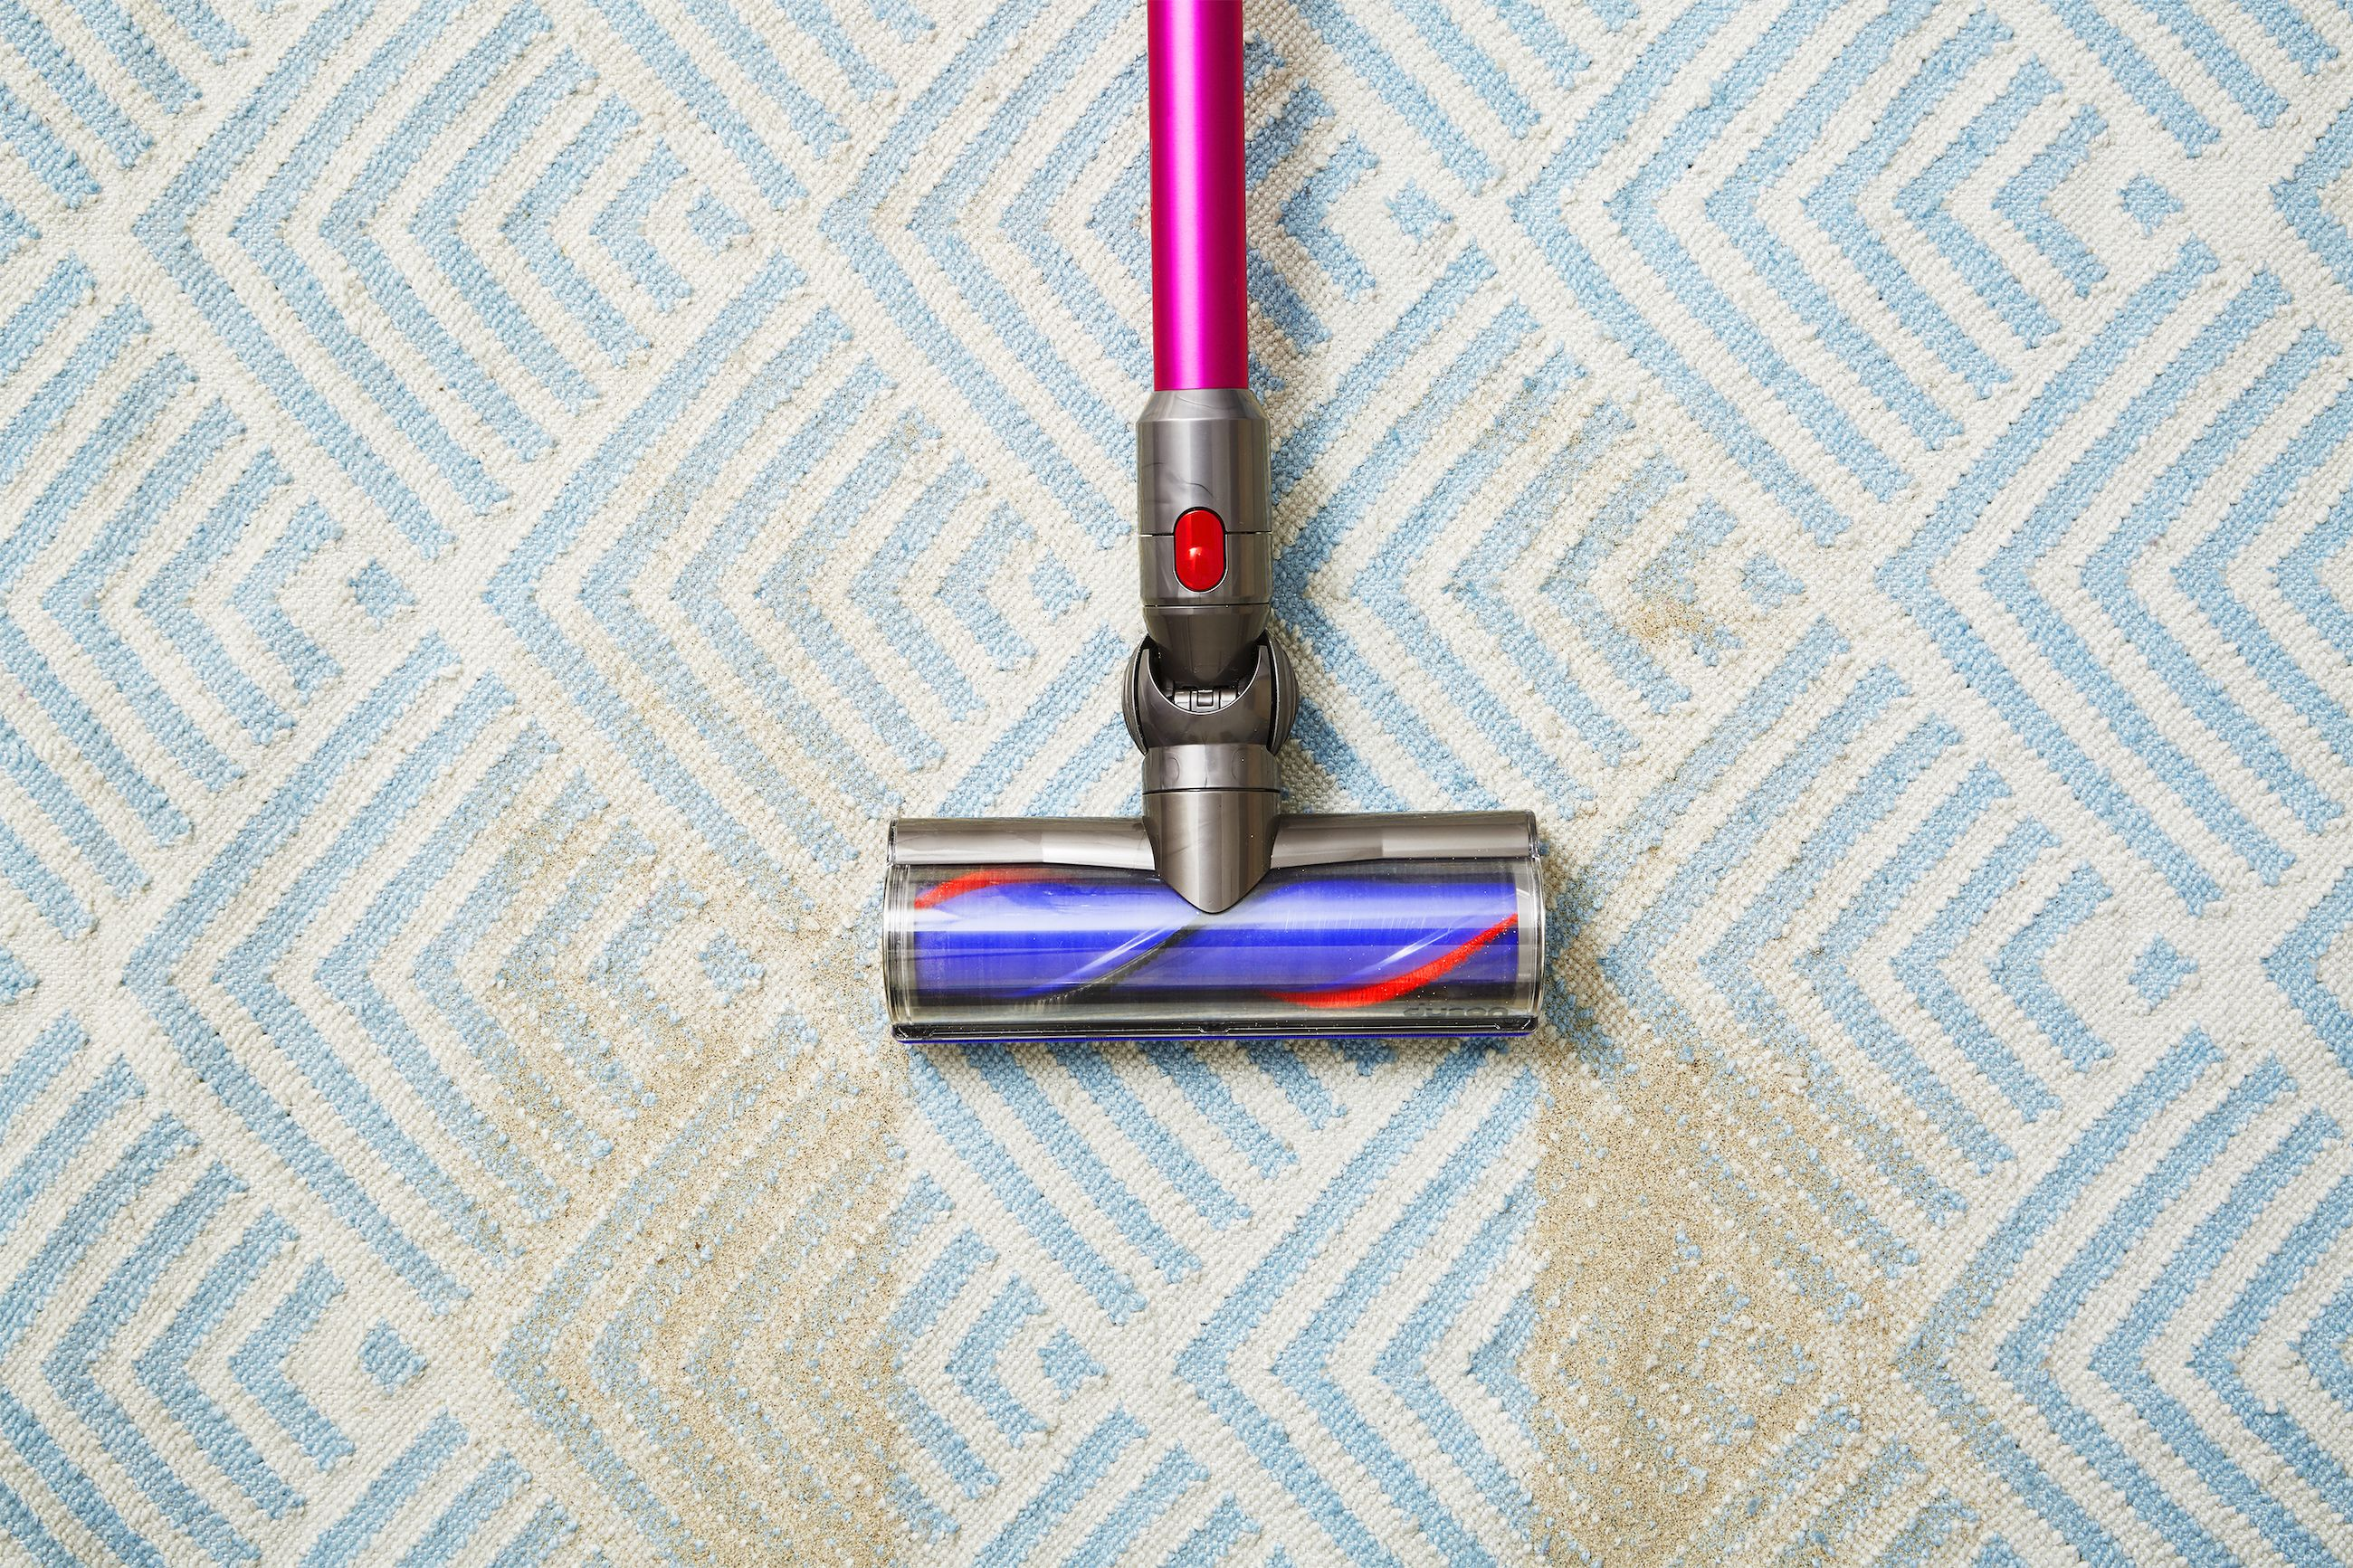 How to Clean Carpet - Best Way to Get